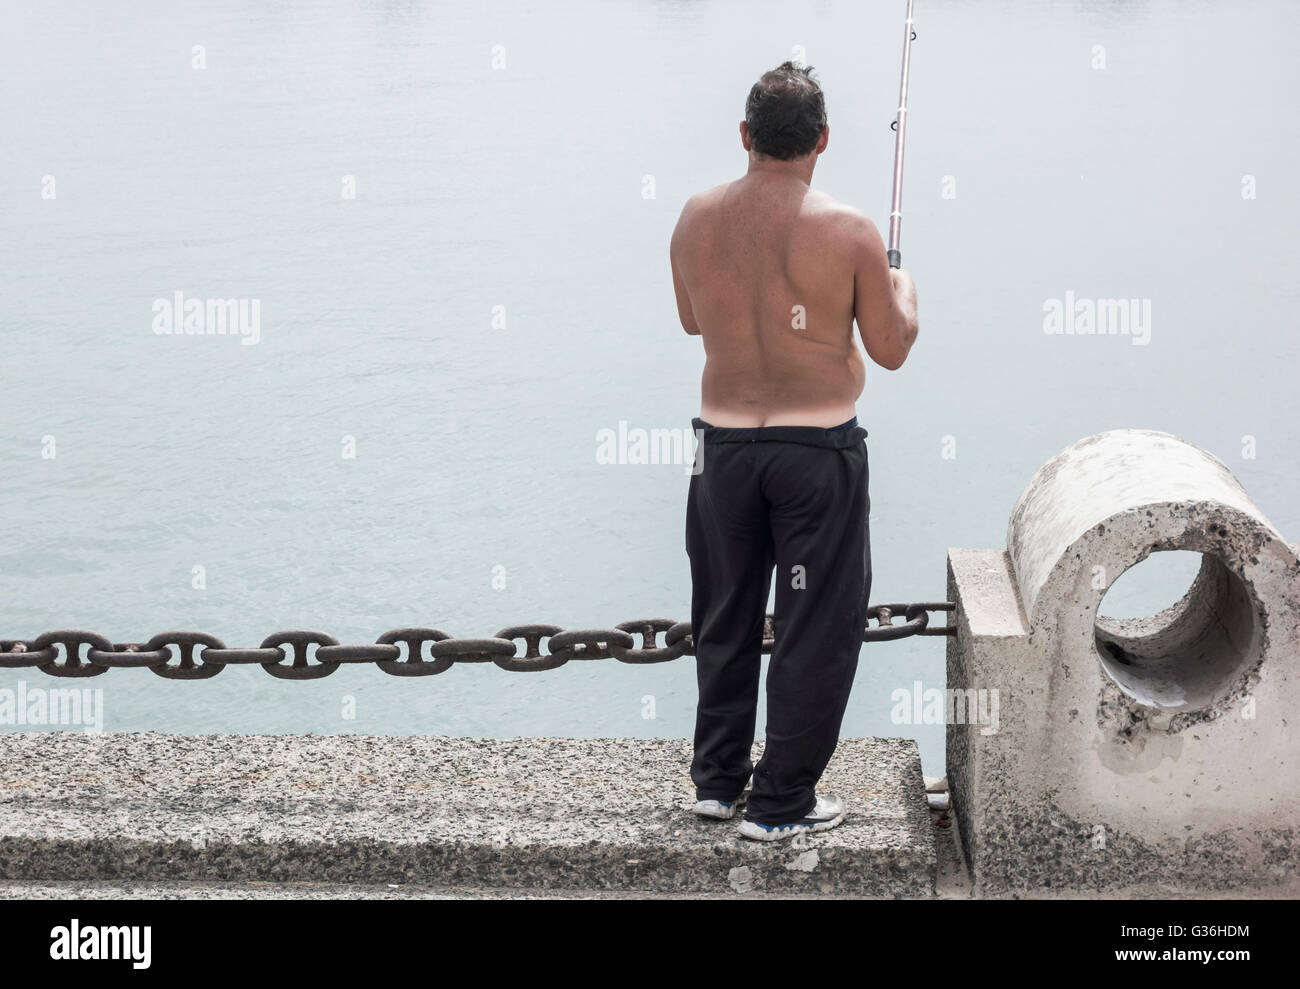 Man showing builders bum and marked tan line fishing from docks in Spain - Stock Image